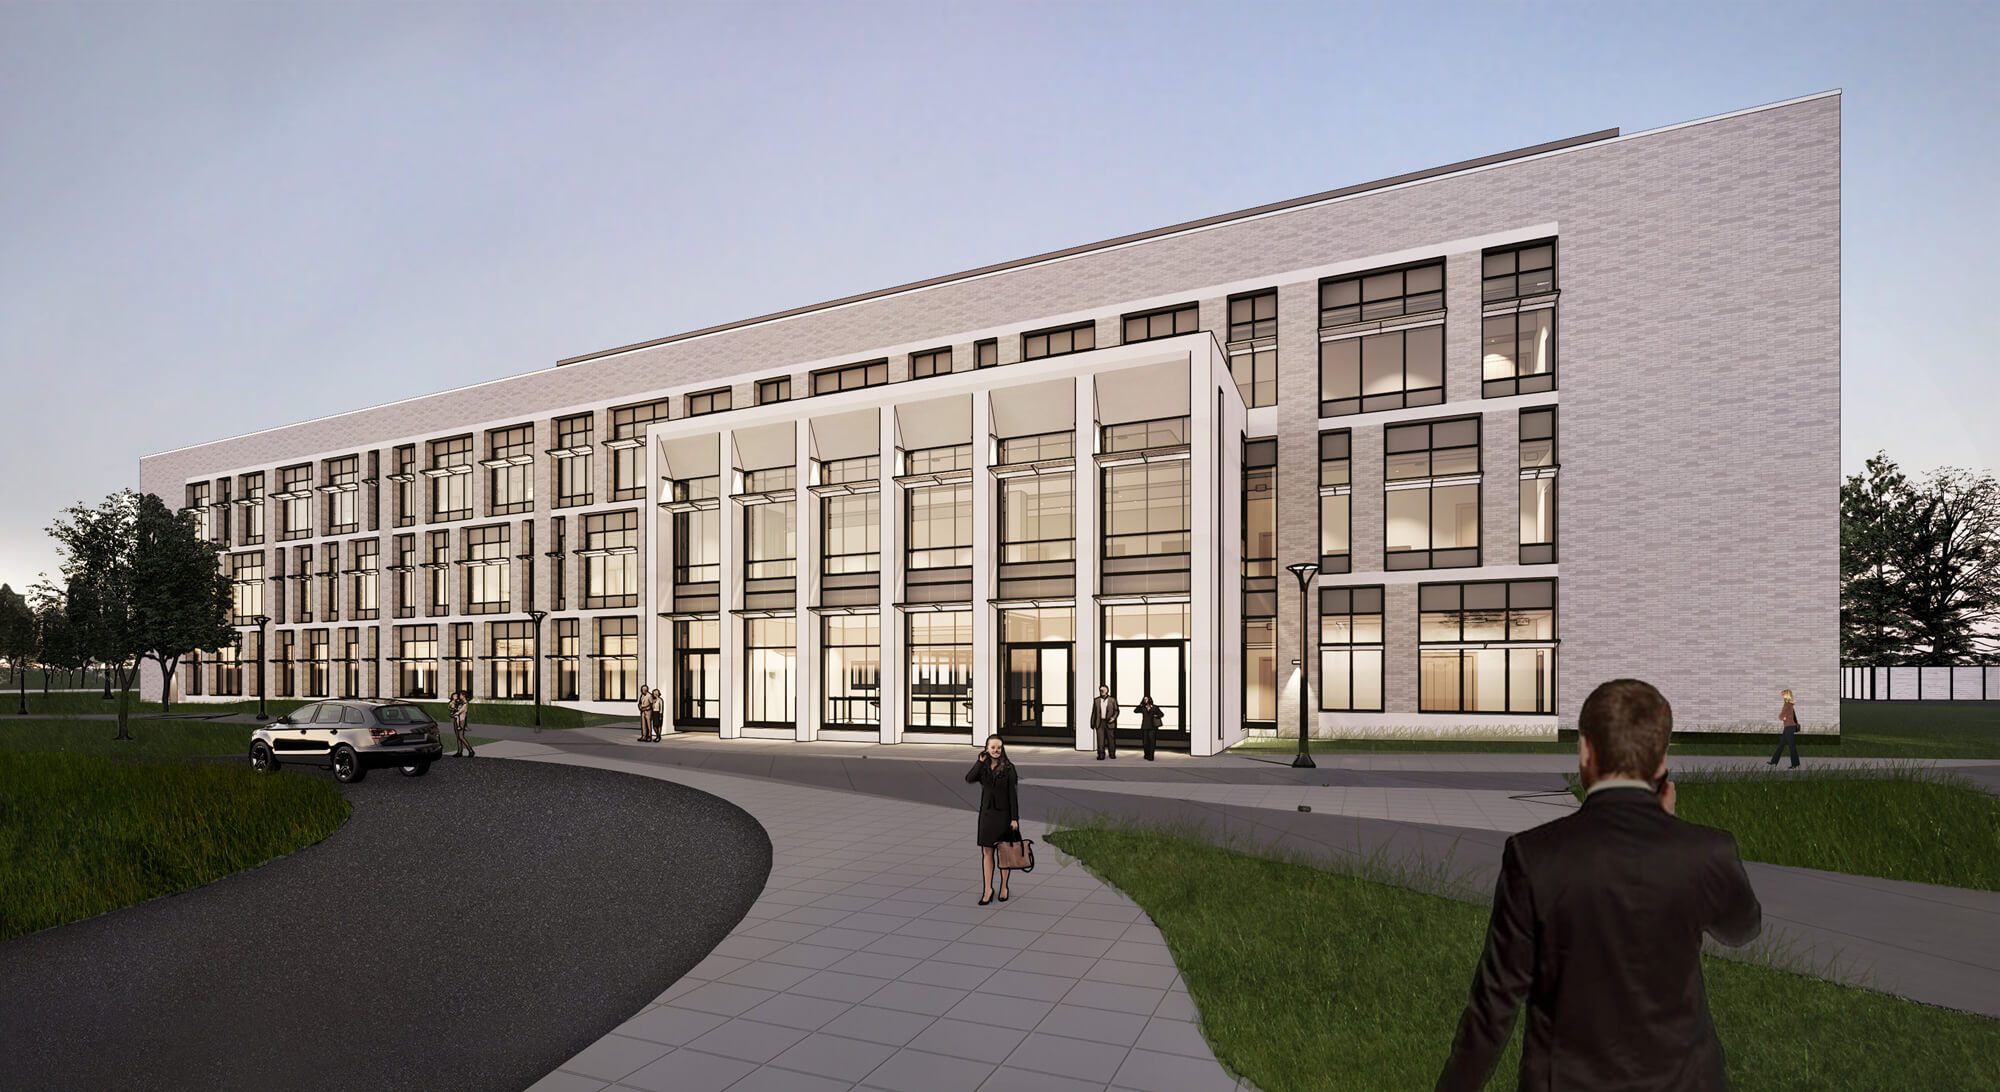 Rendering of the York Judicial Center, with people walking up to the glass and stone entry.